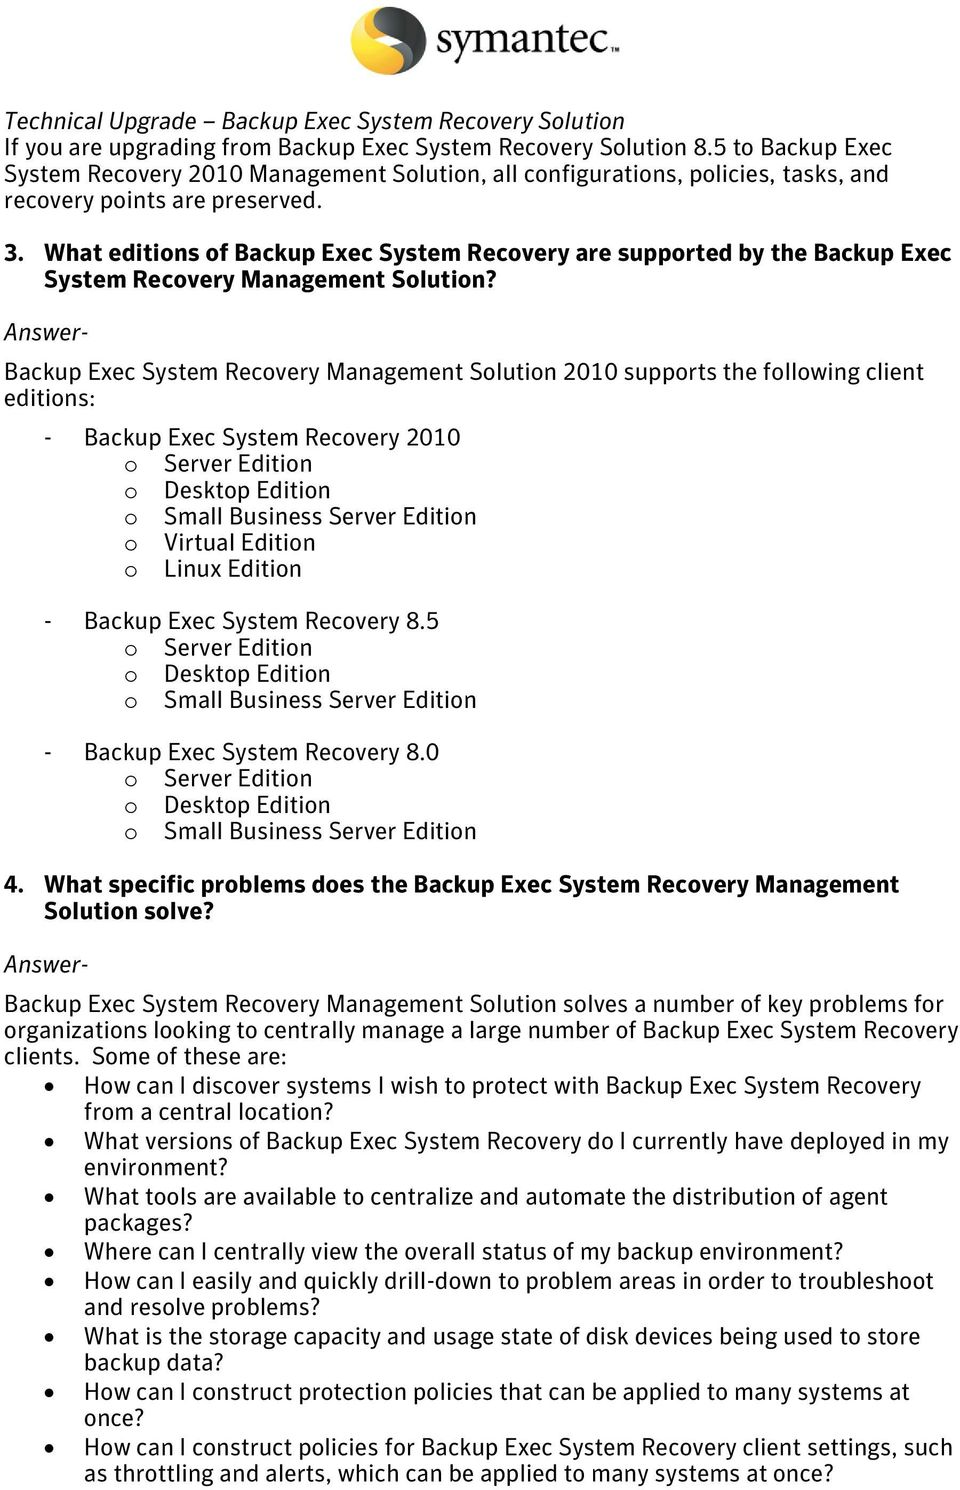 What editions of Backup Exec System Recovery are supported by the Backup Exec System Recovery Management Solution?